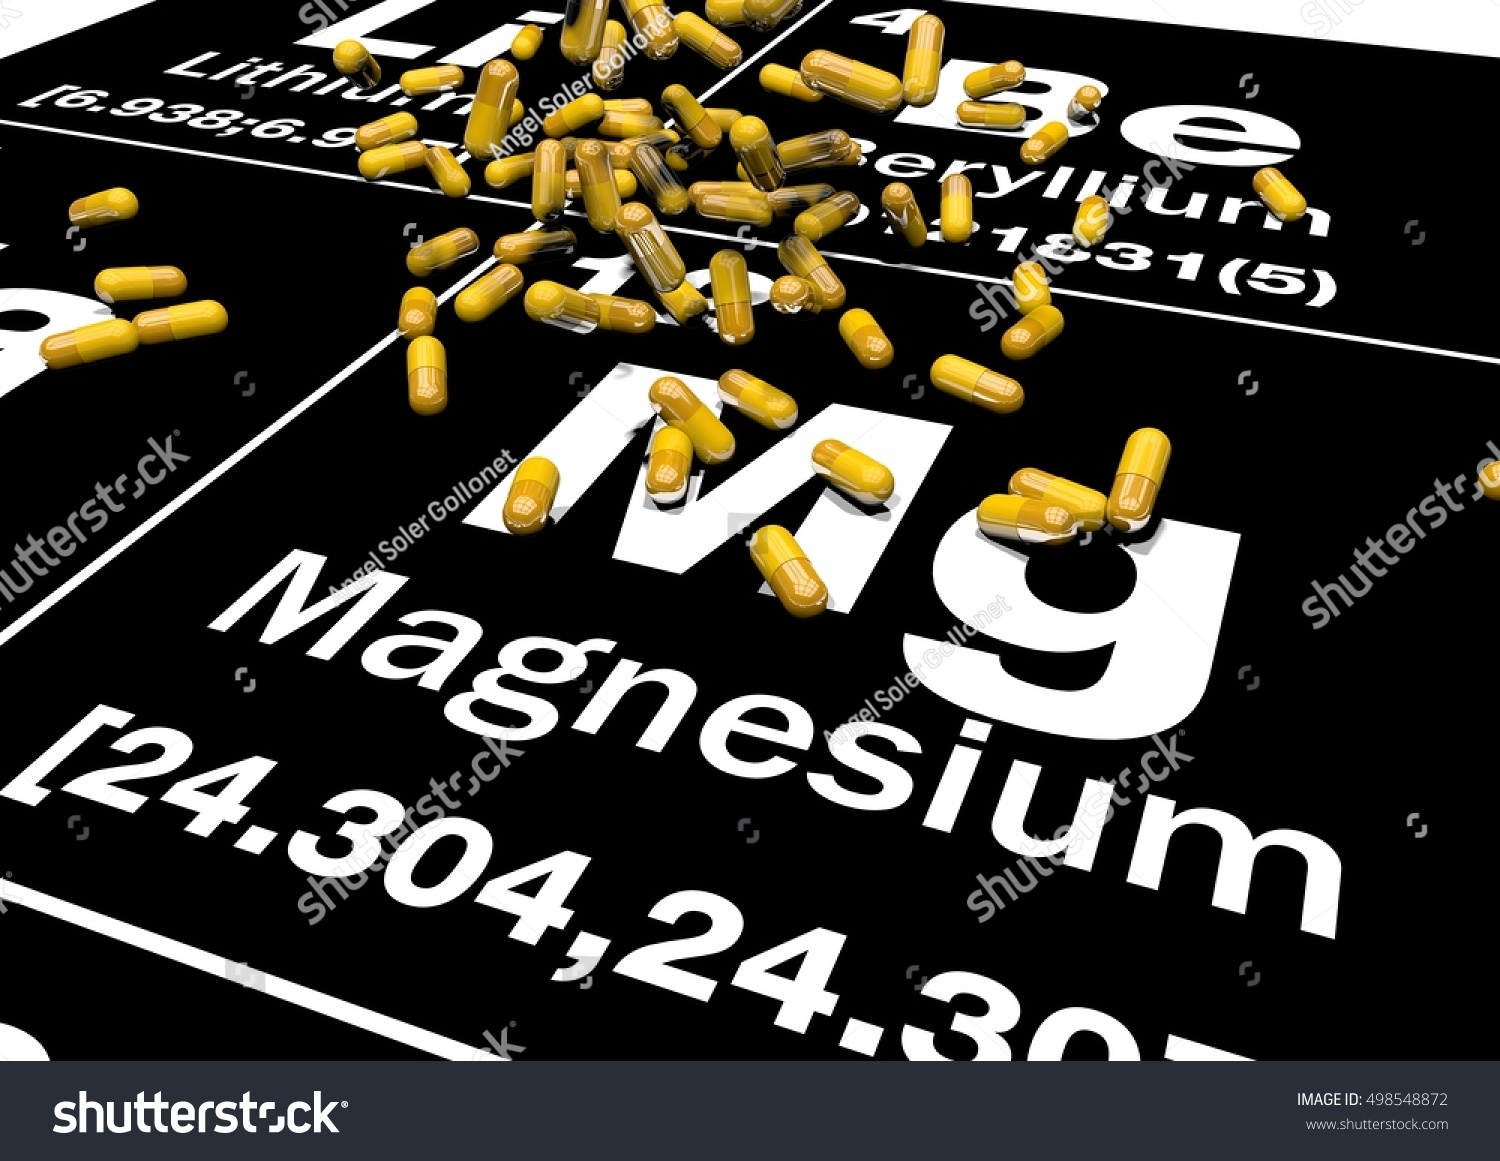 Where is magnesium found on the periodic table choice image what is the symbol for magnesium on the periodic table gallery magnesium mg dietary supplement deficiencies gamestrikefo Gallery